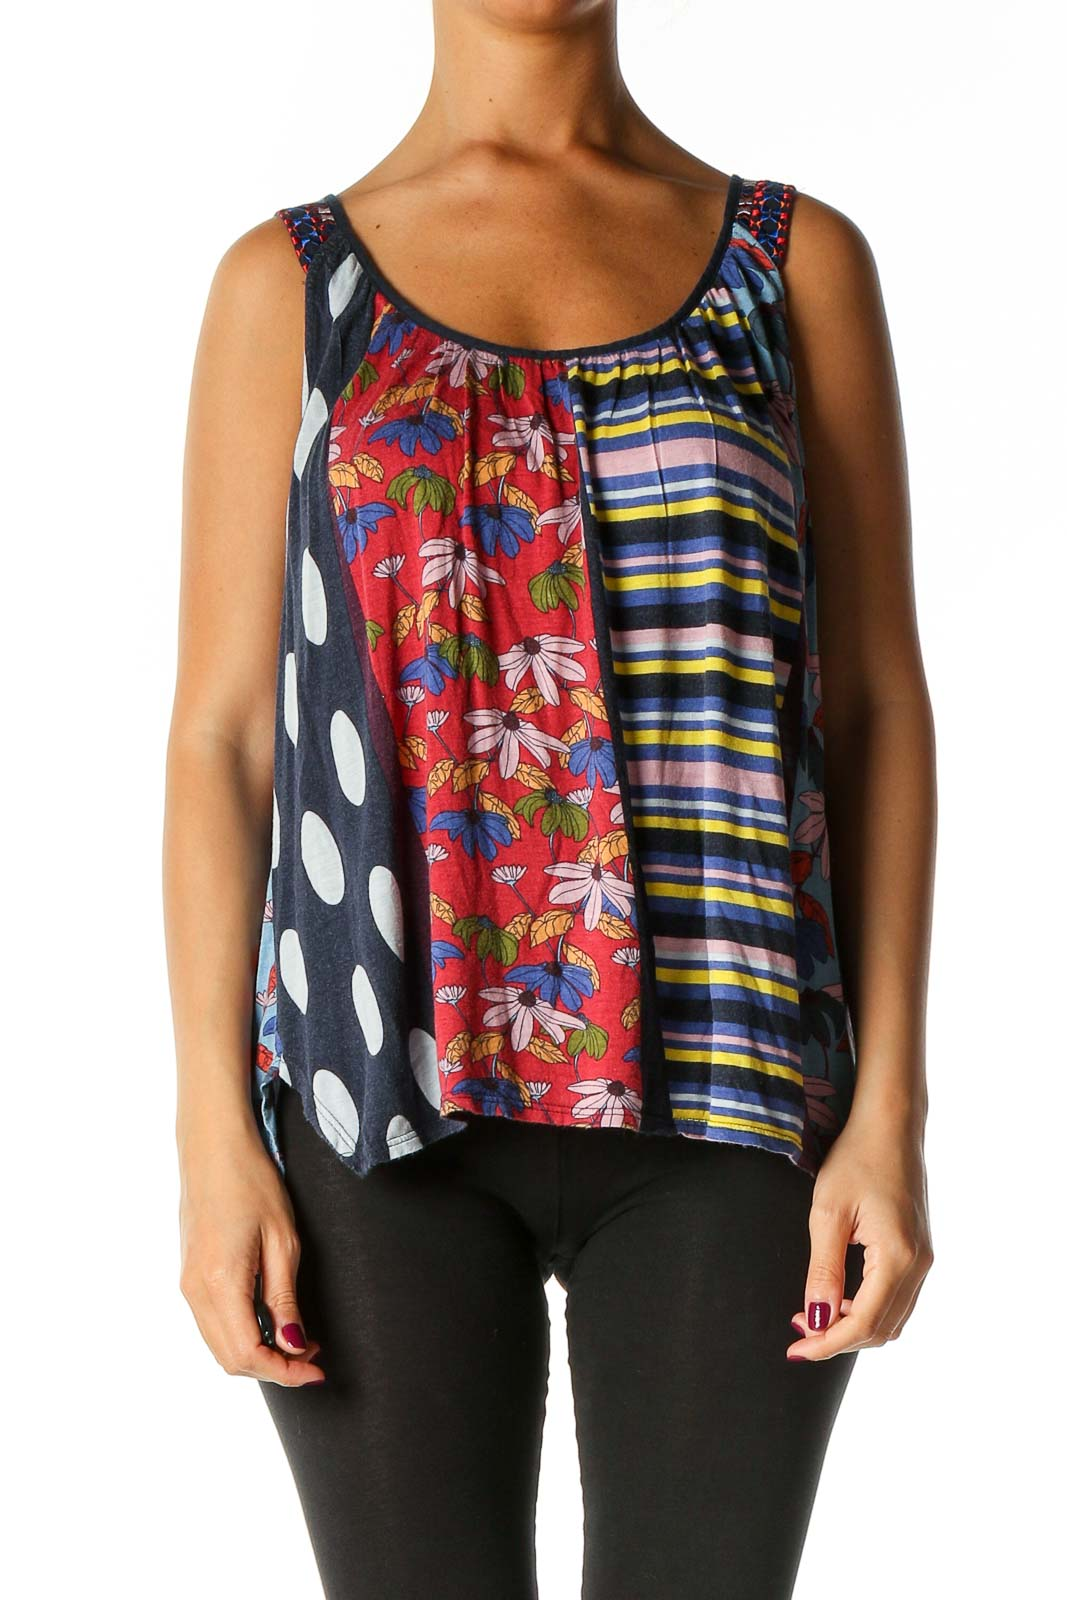 Red Graphic Print Retro Tank Top Front